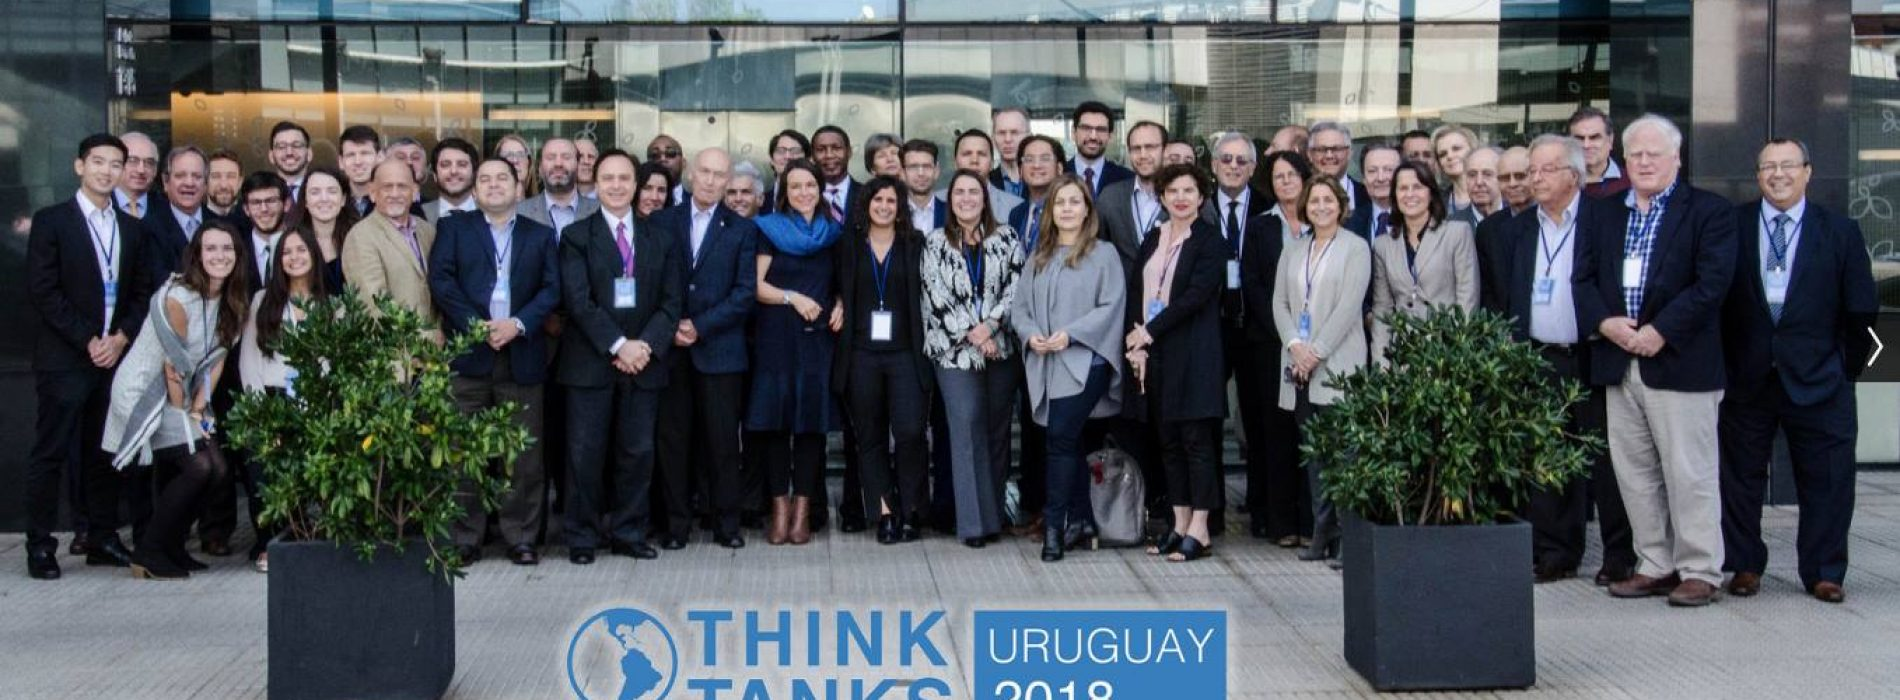 6to Encuentro Latinoamericano de Think Tanks